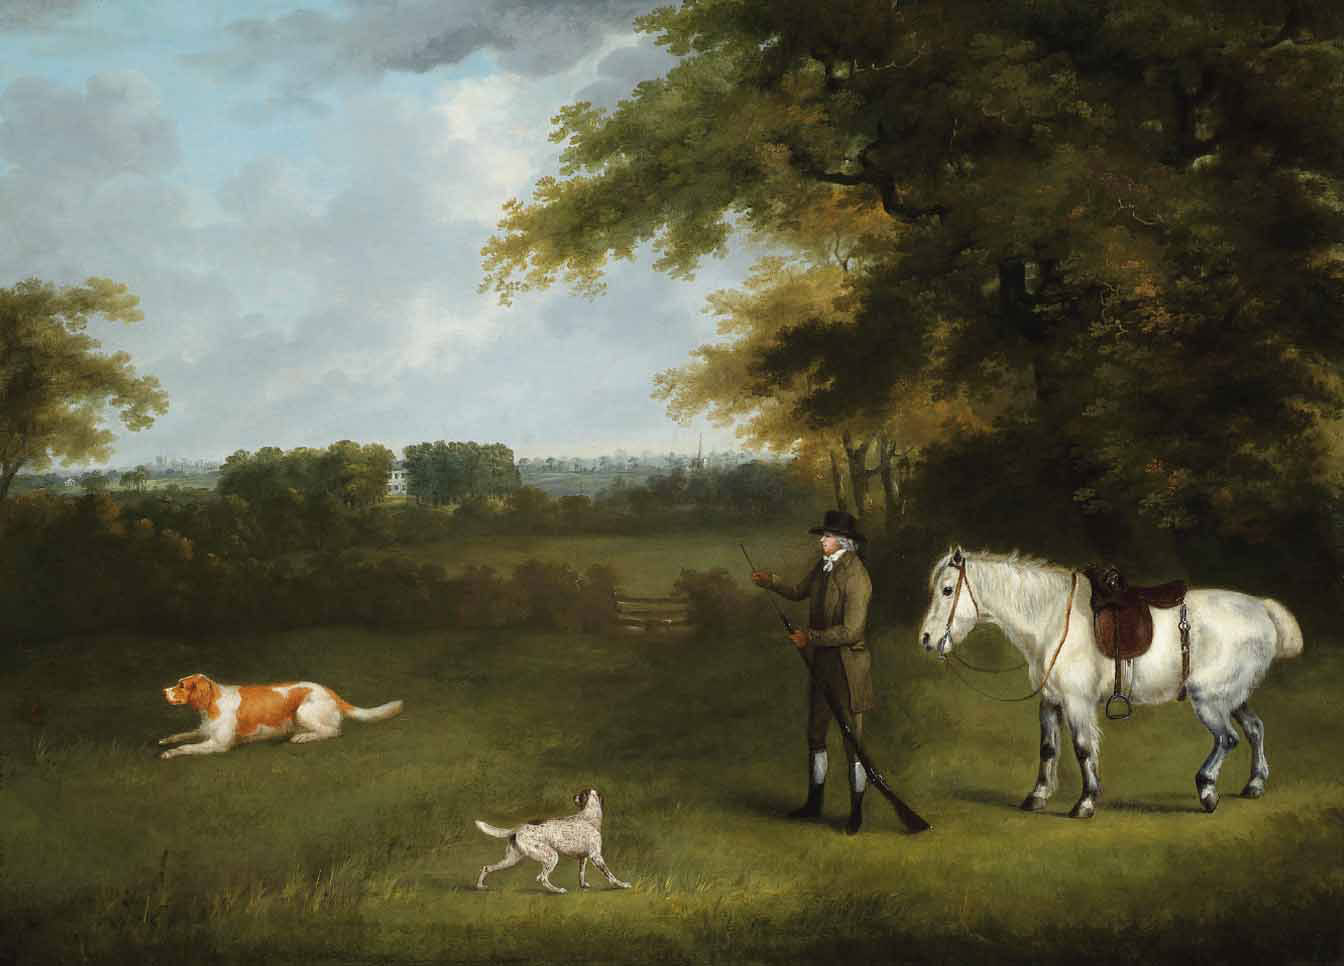 A sportsman with his dogs and pony in a wooded landscape